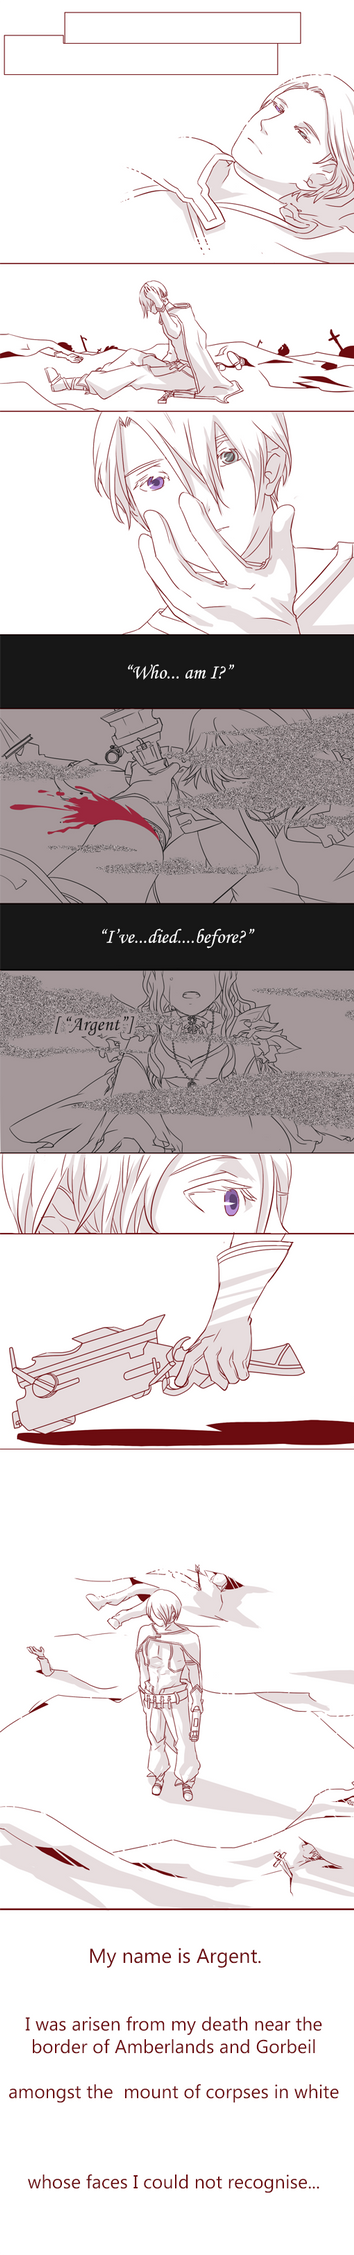 [PFFK] The Silver Bullet, part 1: Ressurection by yami-izumi